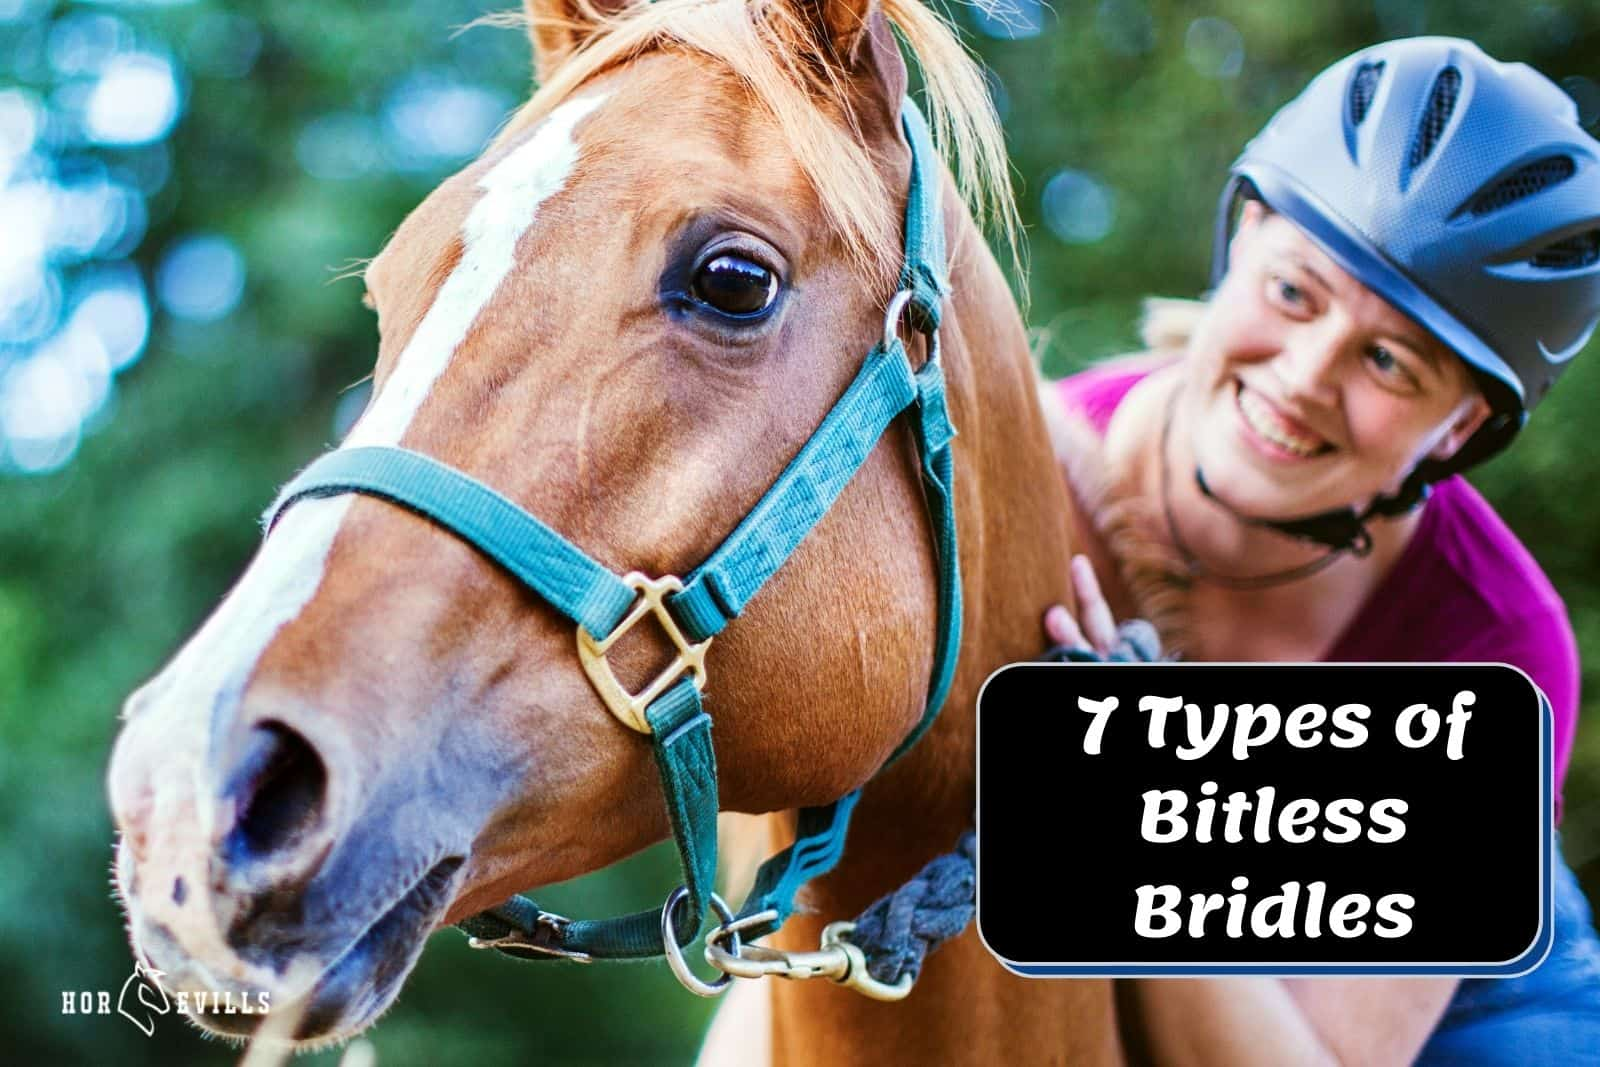 lady riding a horse wearing one of the bitless bridle types